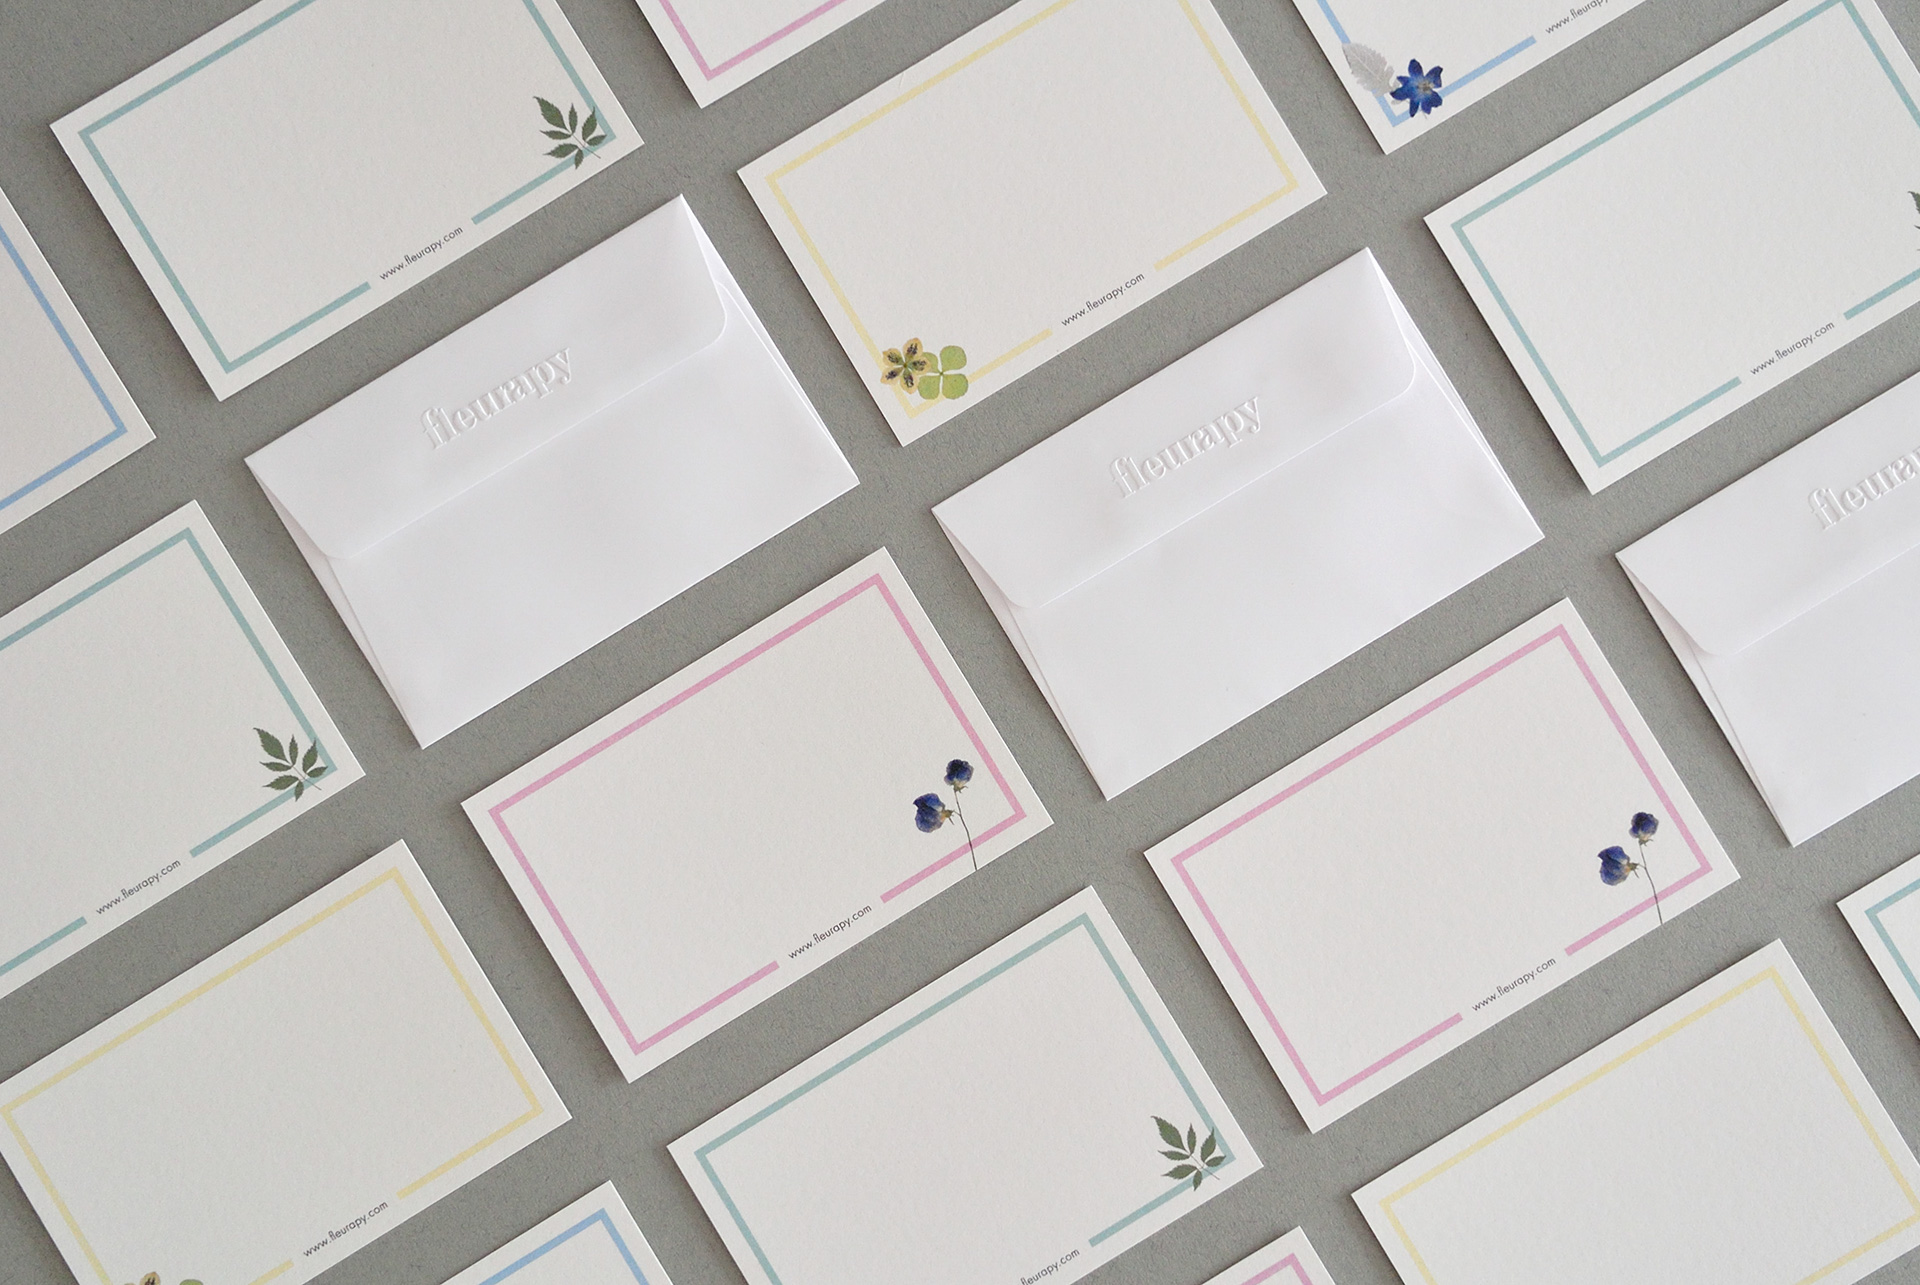 Fleurapy Stationery – Envelope & Note Cards 02